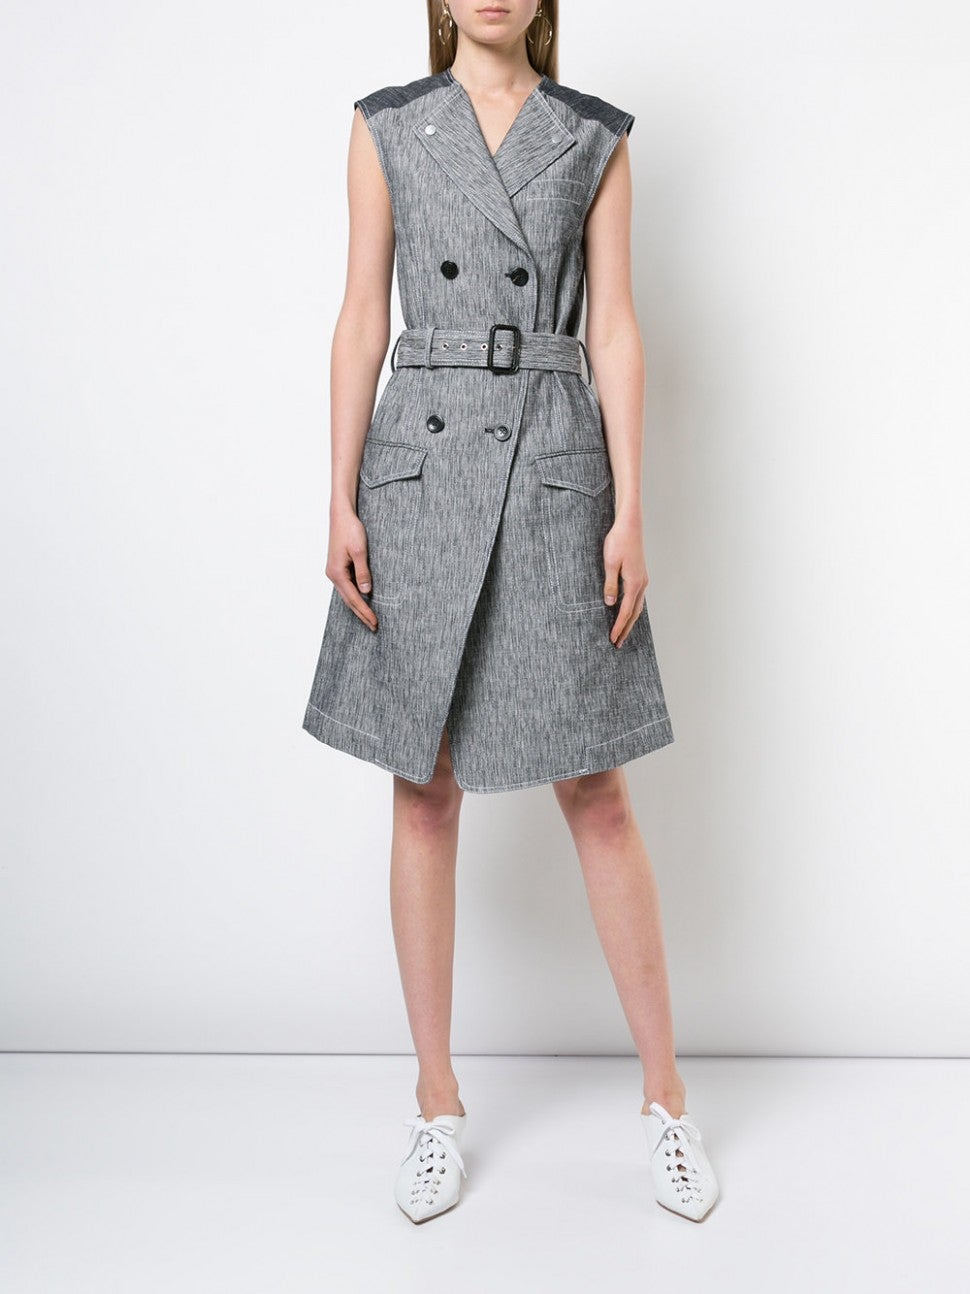 Derek Lam trench dress